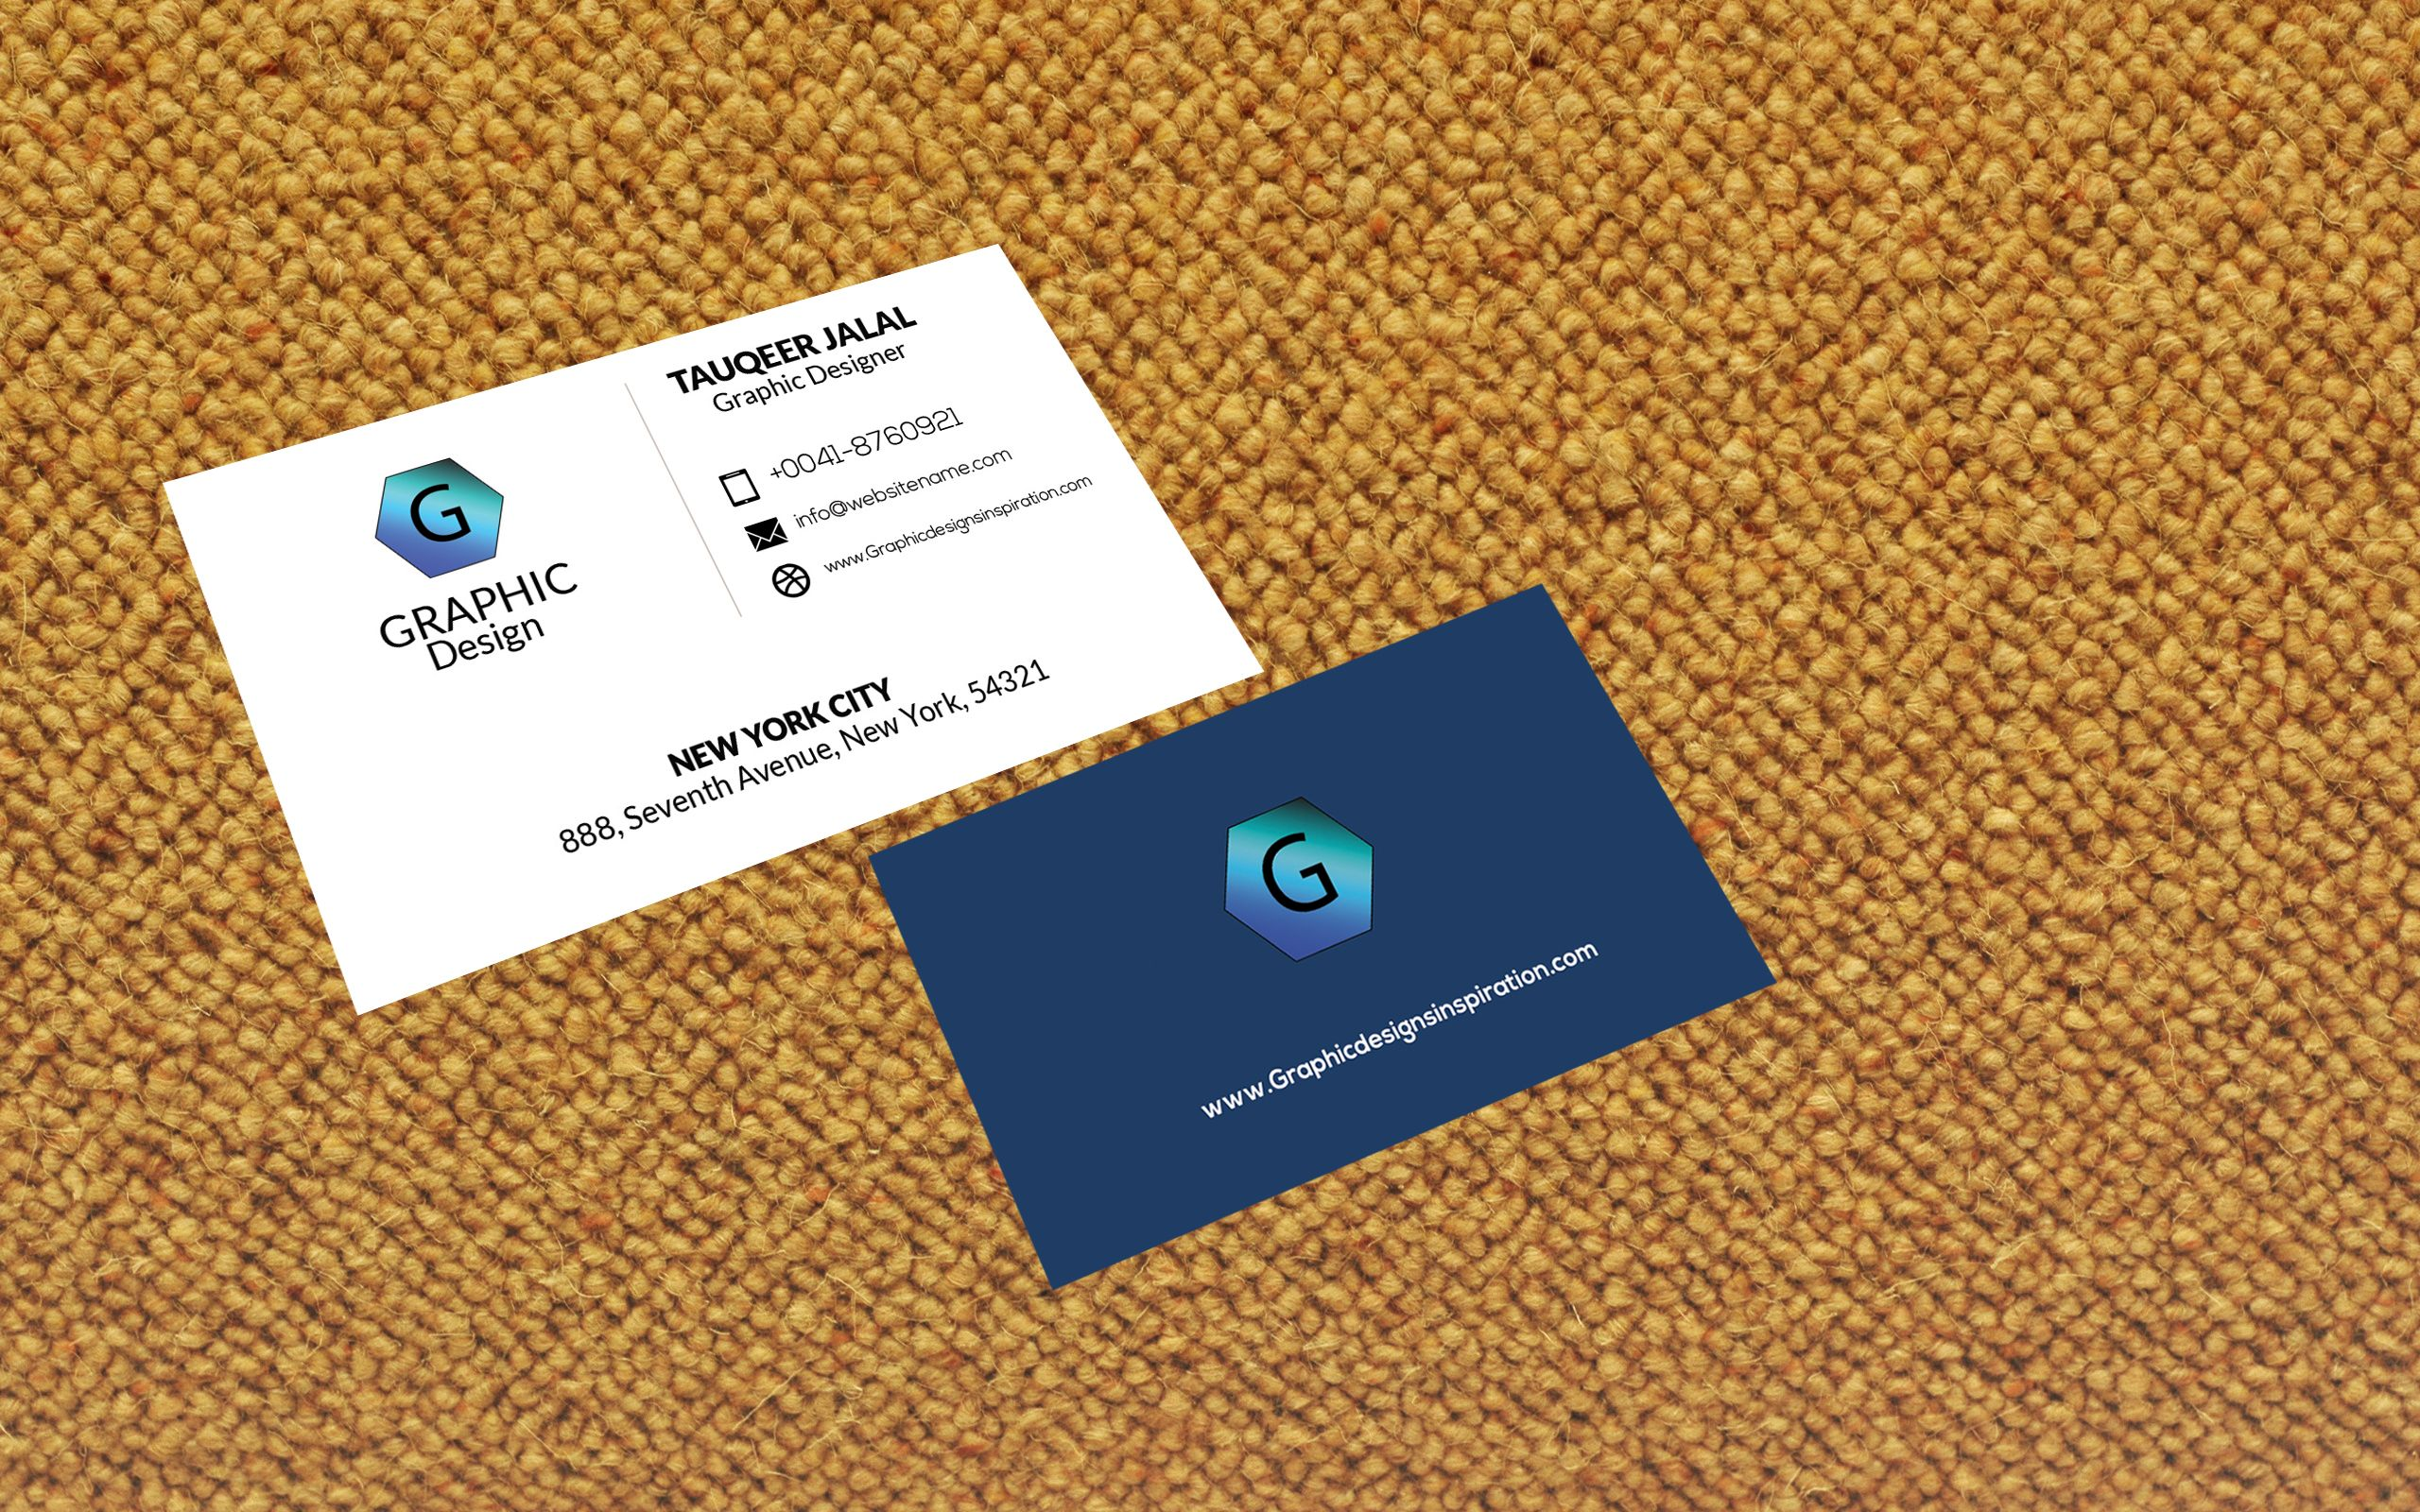 Freebie business card designs free psd business card maker freebie business card designs free psd business card maker graphic design inspiration freebies freebusinesscard freebusinesscardtemplates colourmoves Image collections